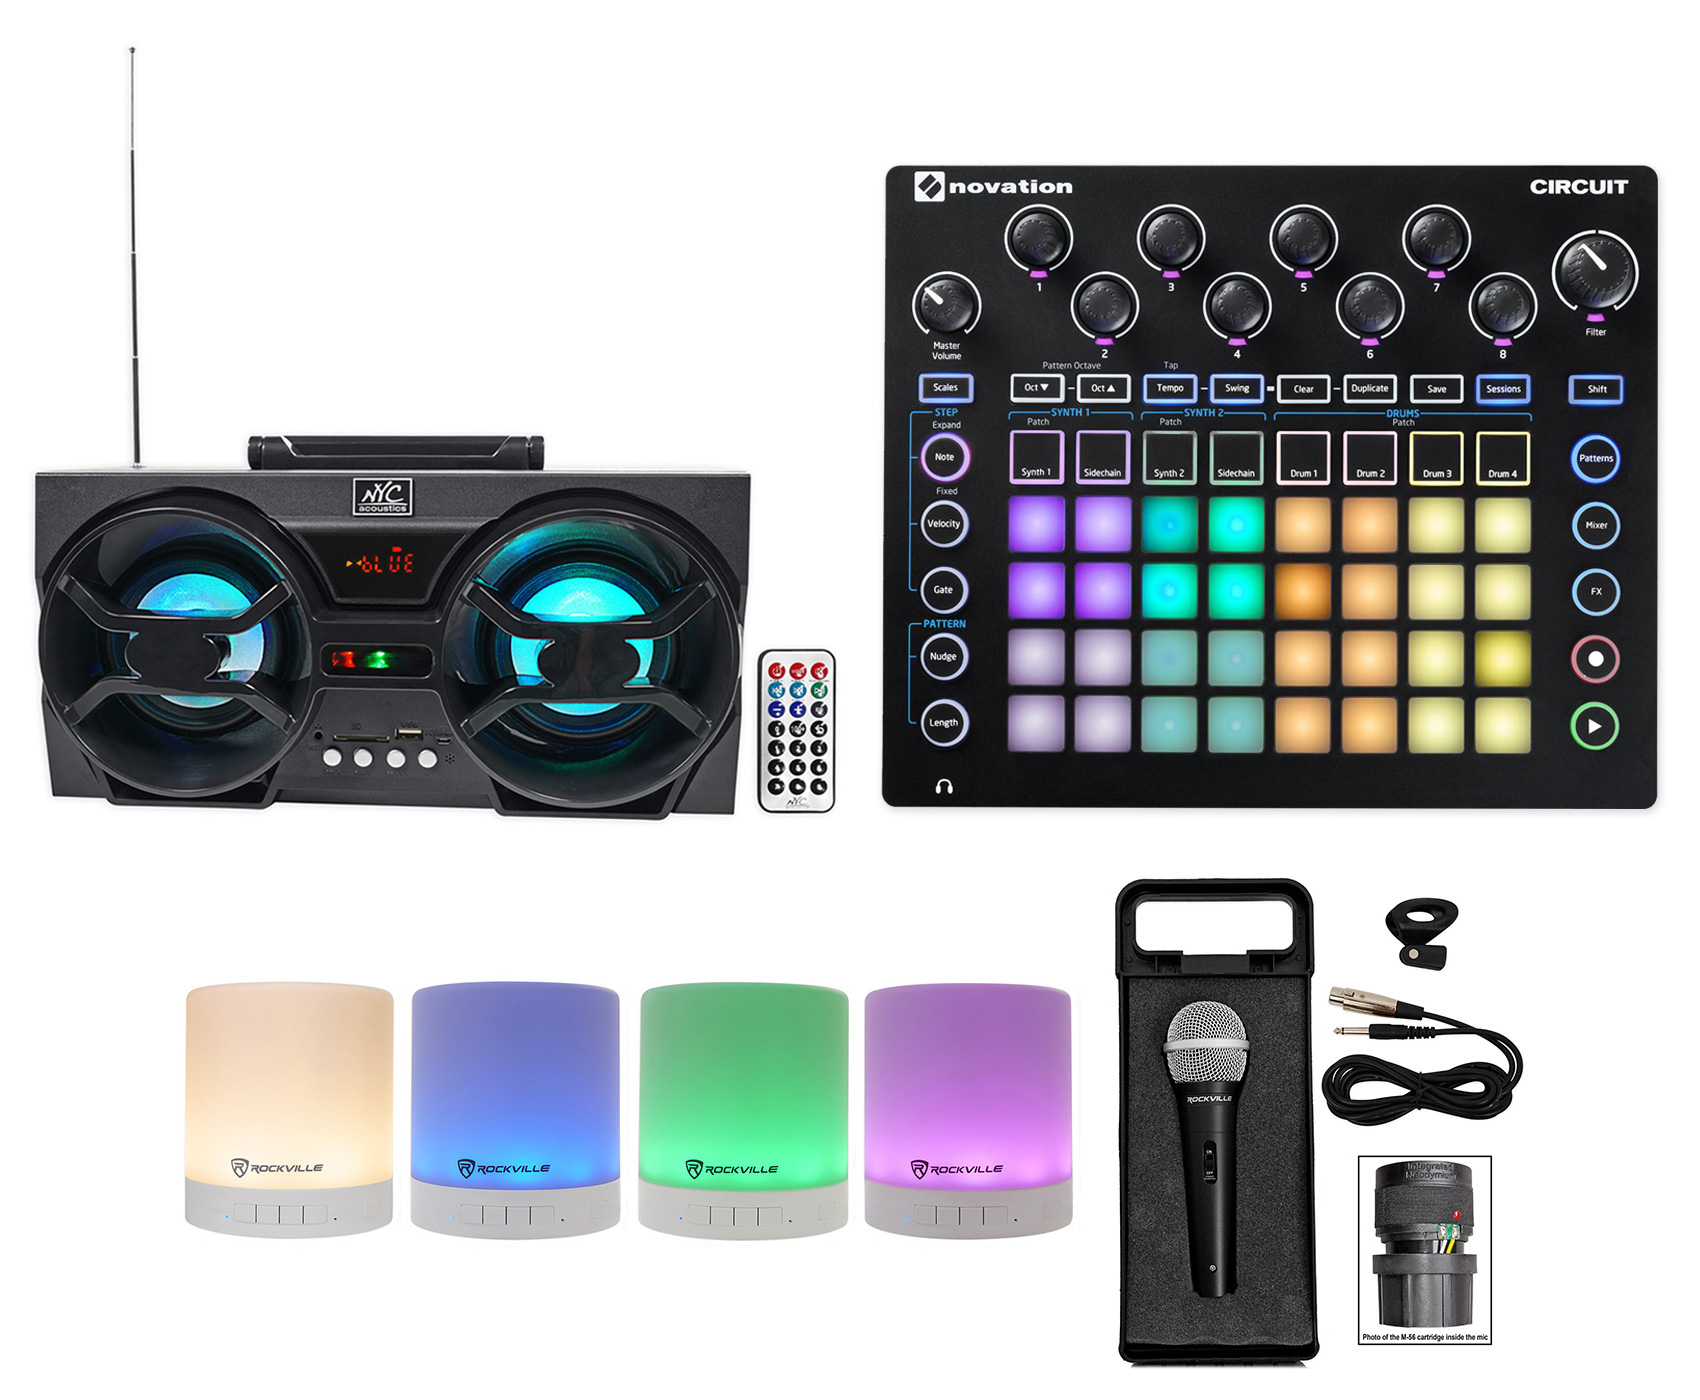 Novation CIRCUIT Groove Box Music Controller Pad Drum Machine+2) Speakers+Mic by NOVATION